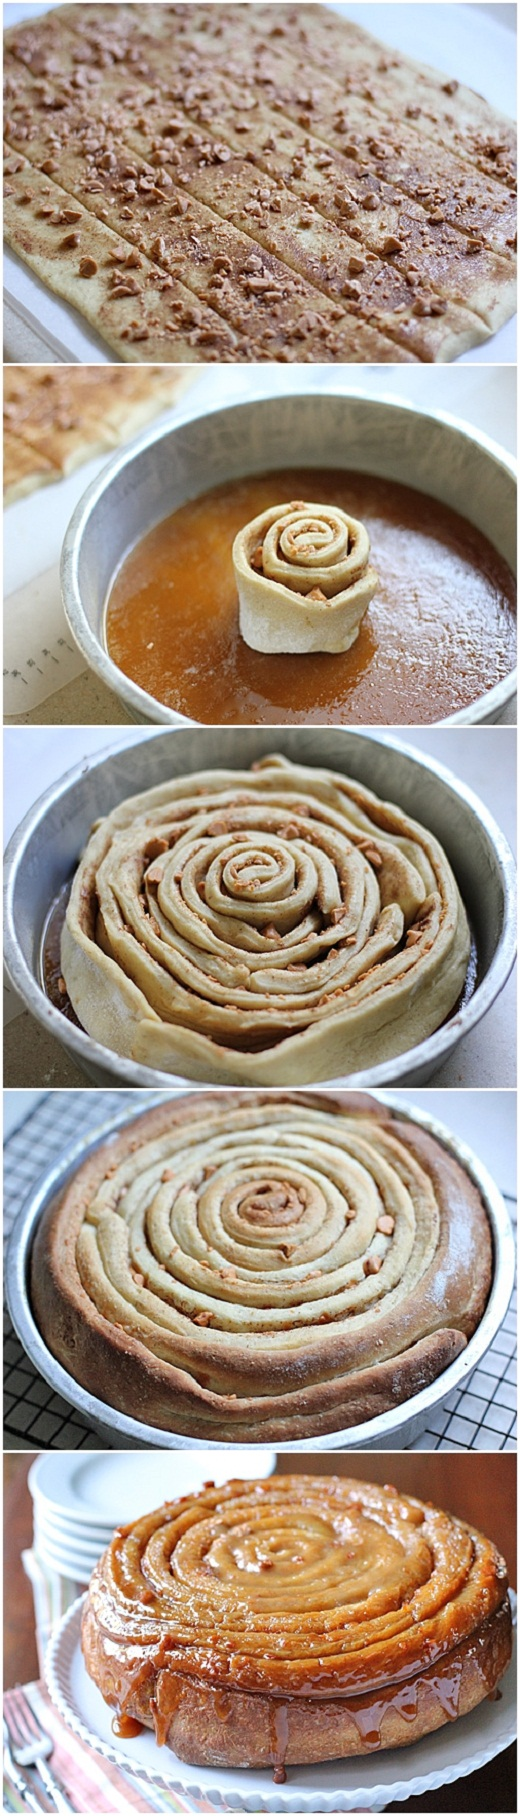 Butterscotch-Spiral-Coffee-Cake-Recipe